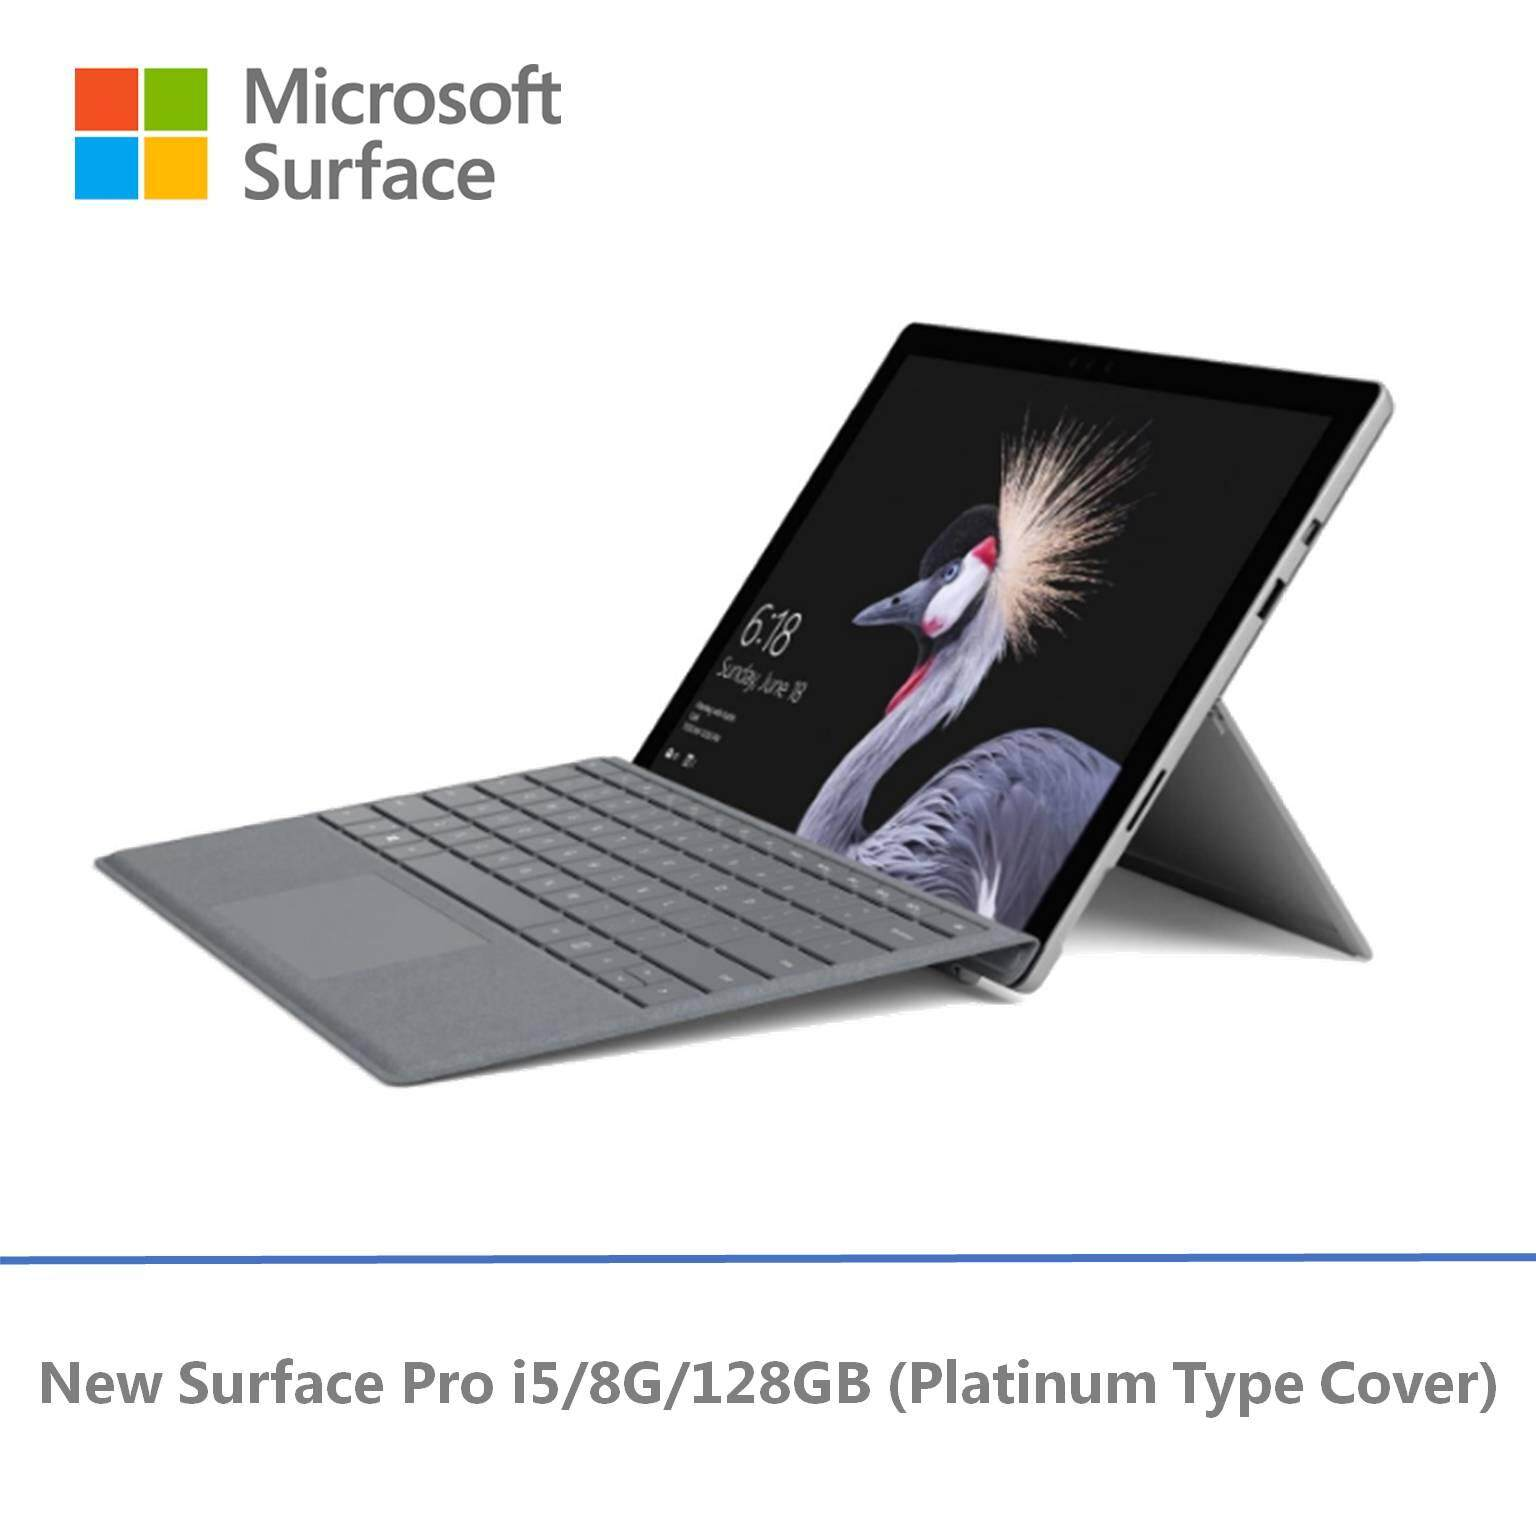 Microsoft New Surface Pro - 128GB / Intel Core i5 - 8GB RAM + Signature Pro Type Cover Malaysia